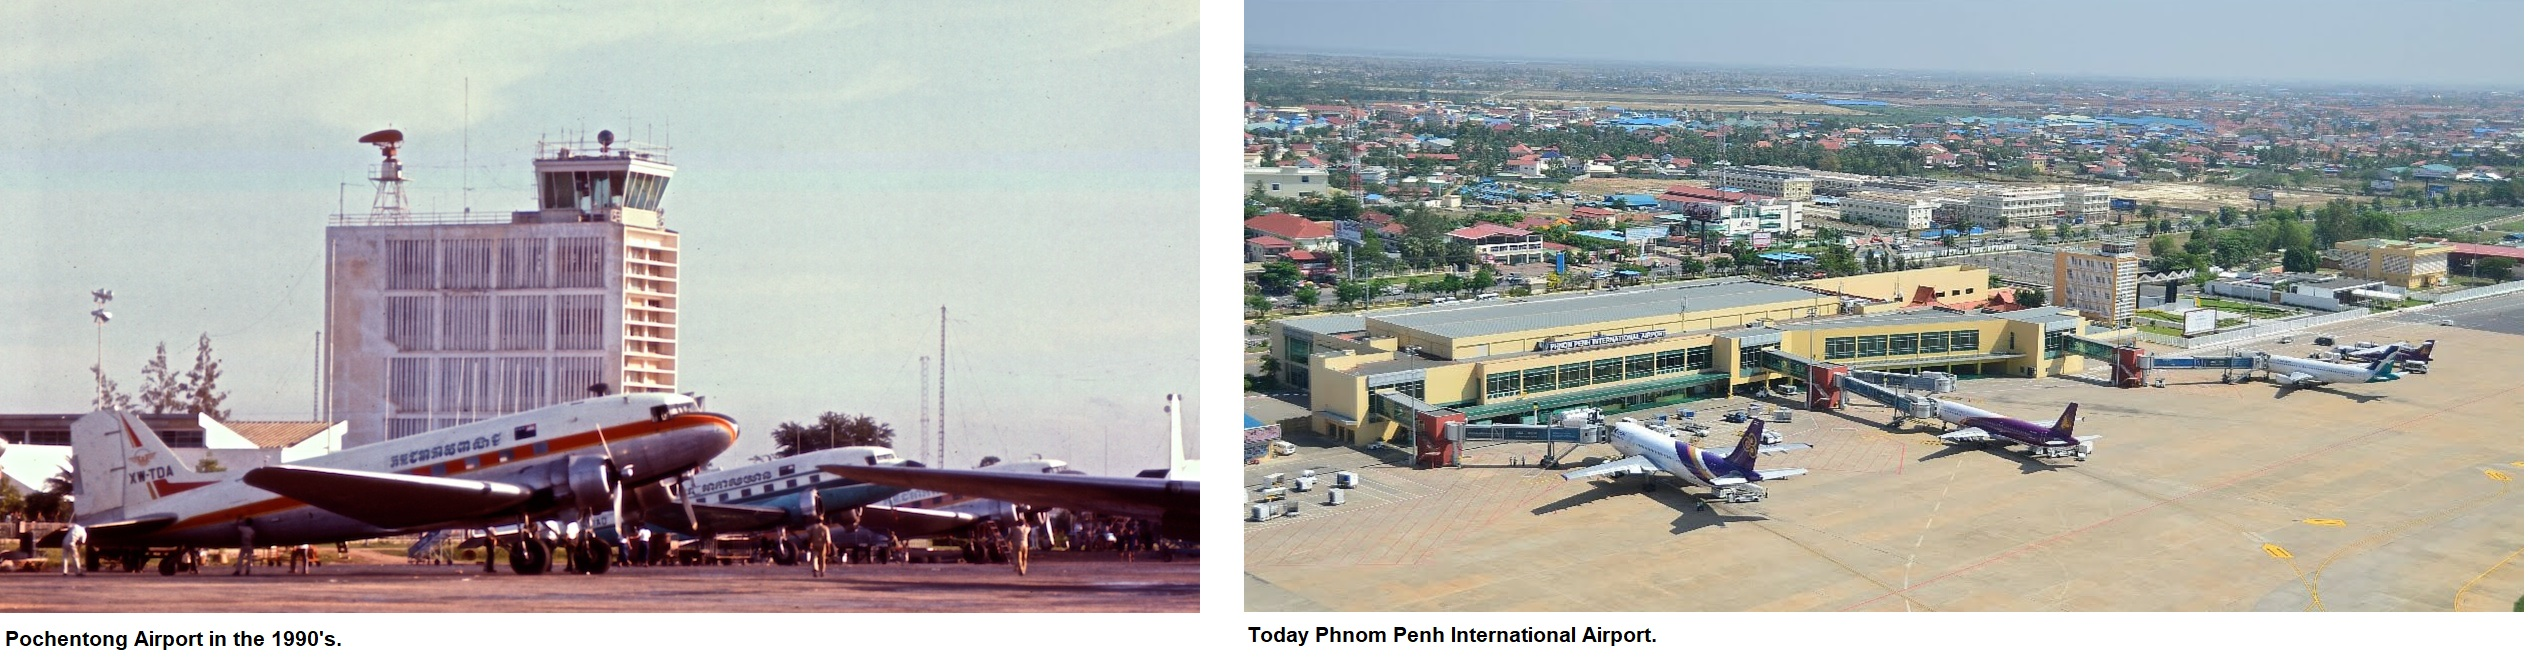 Phnom Penh International Airport in the 1990s and today.jpg